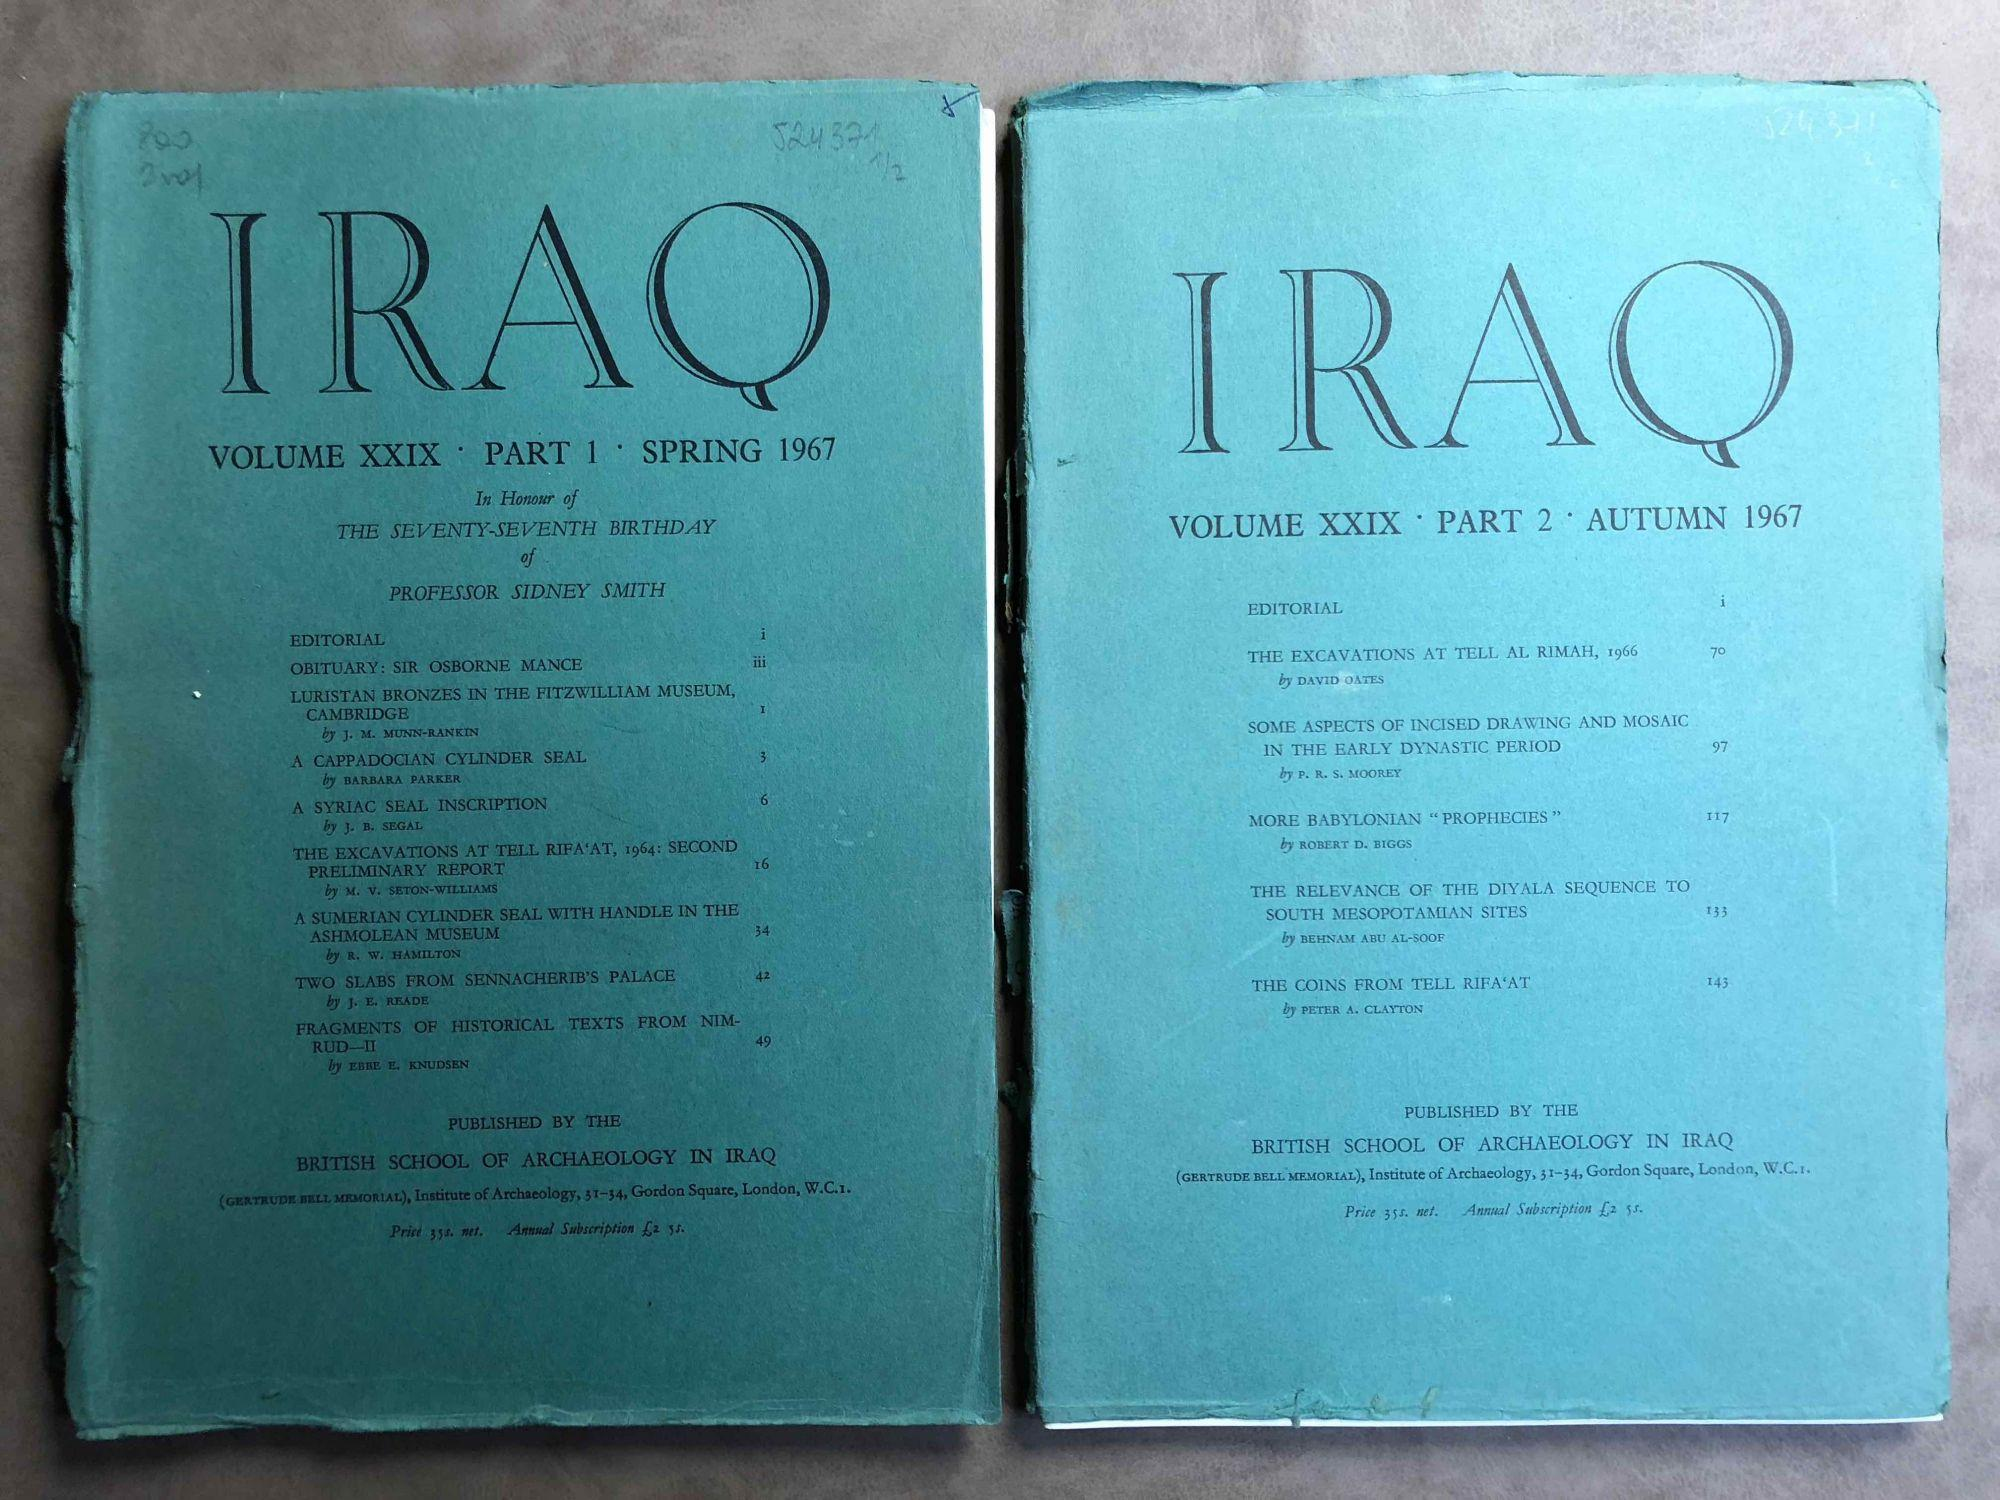 Iraq_Journal_of_the_British_School_of_Archaeology_in_Iraq_Volume_XXIX_Parts_12_1967_In_honour_of_the_seventyseventh_birthday_of_professor_Sidn